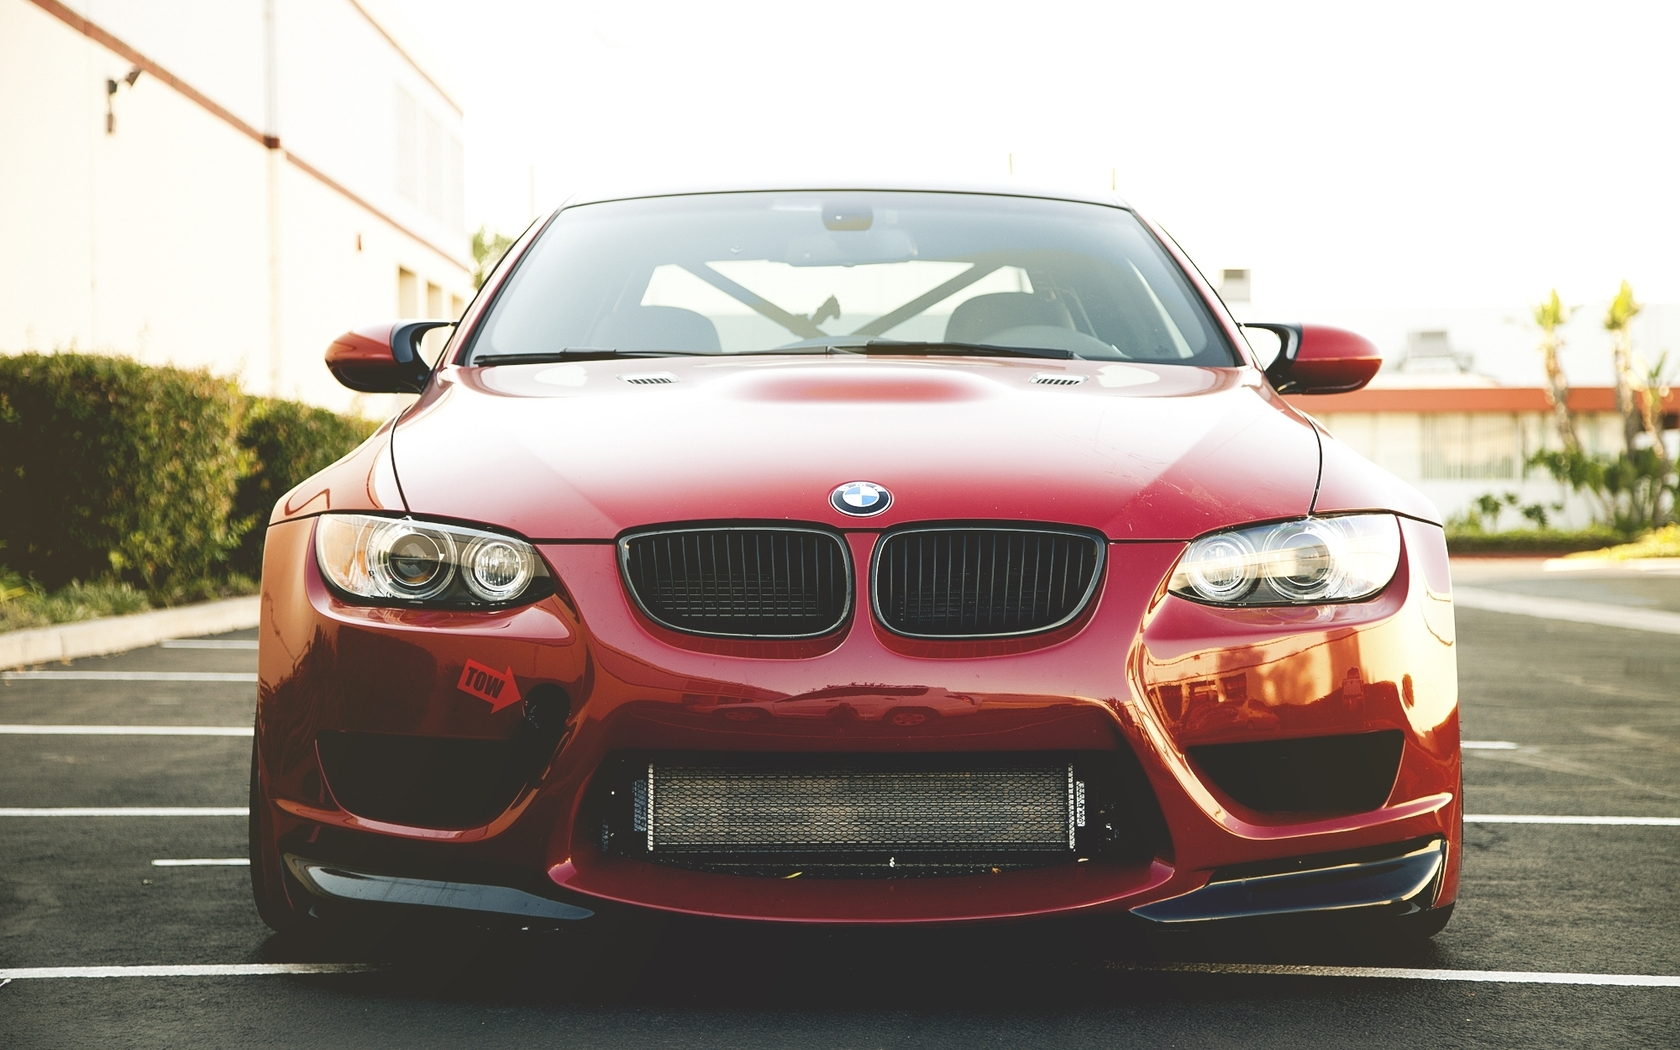 BMW Images M3 HD Wallpaper And Background Photos